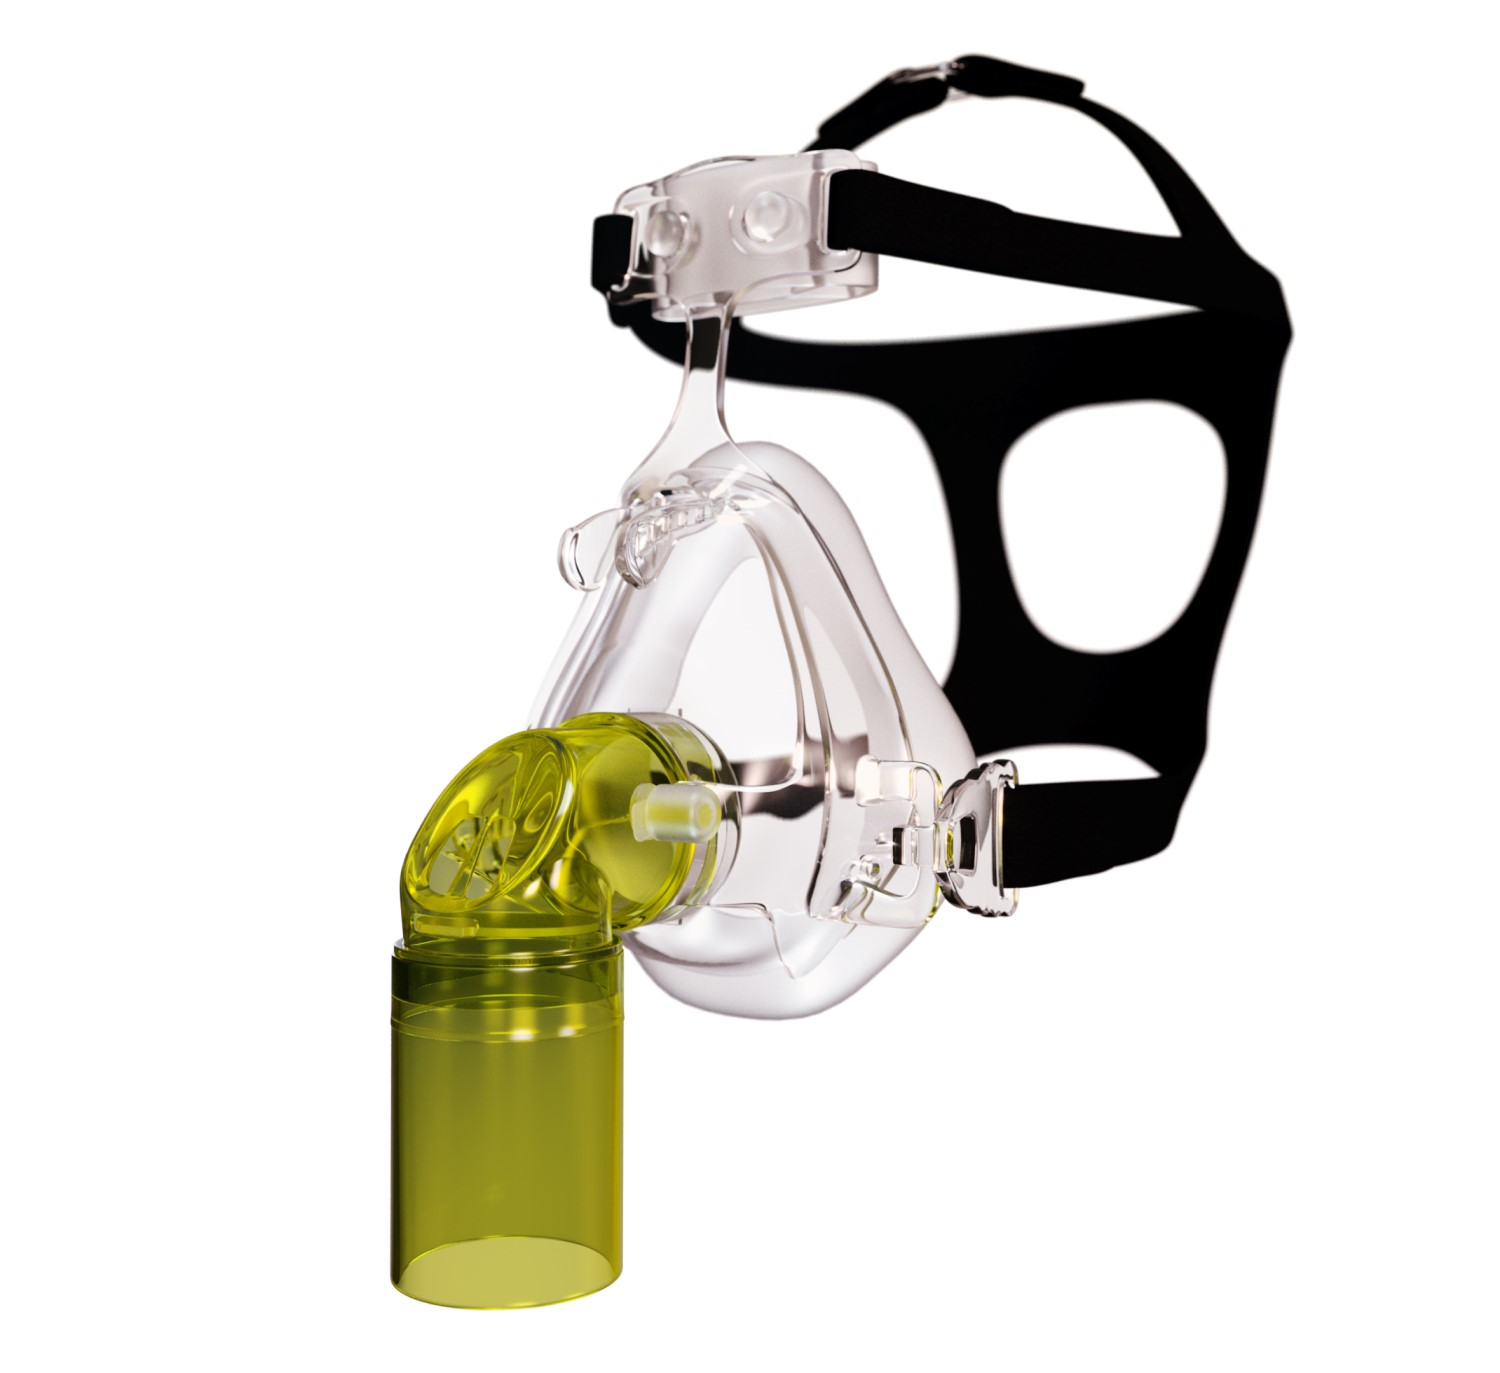 Image of paediatric face mask with head gear